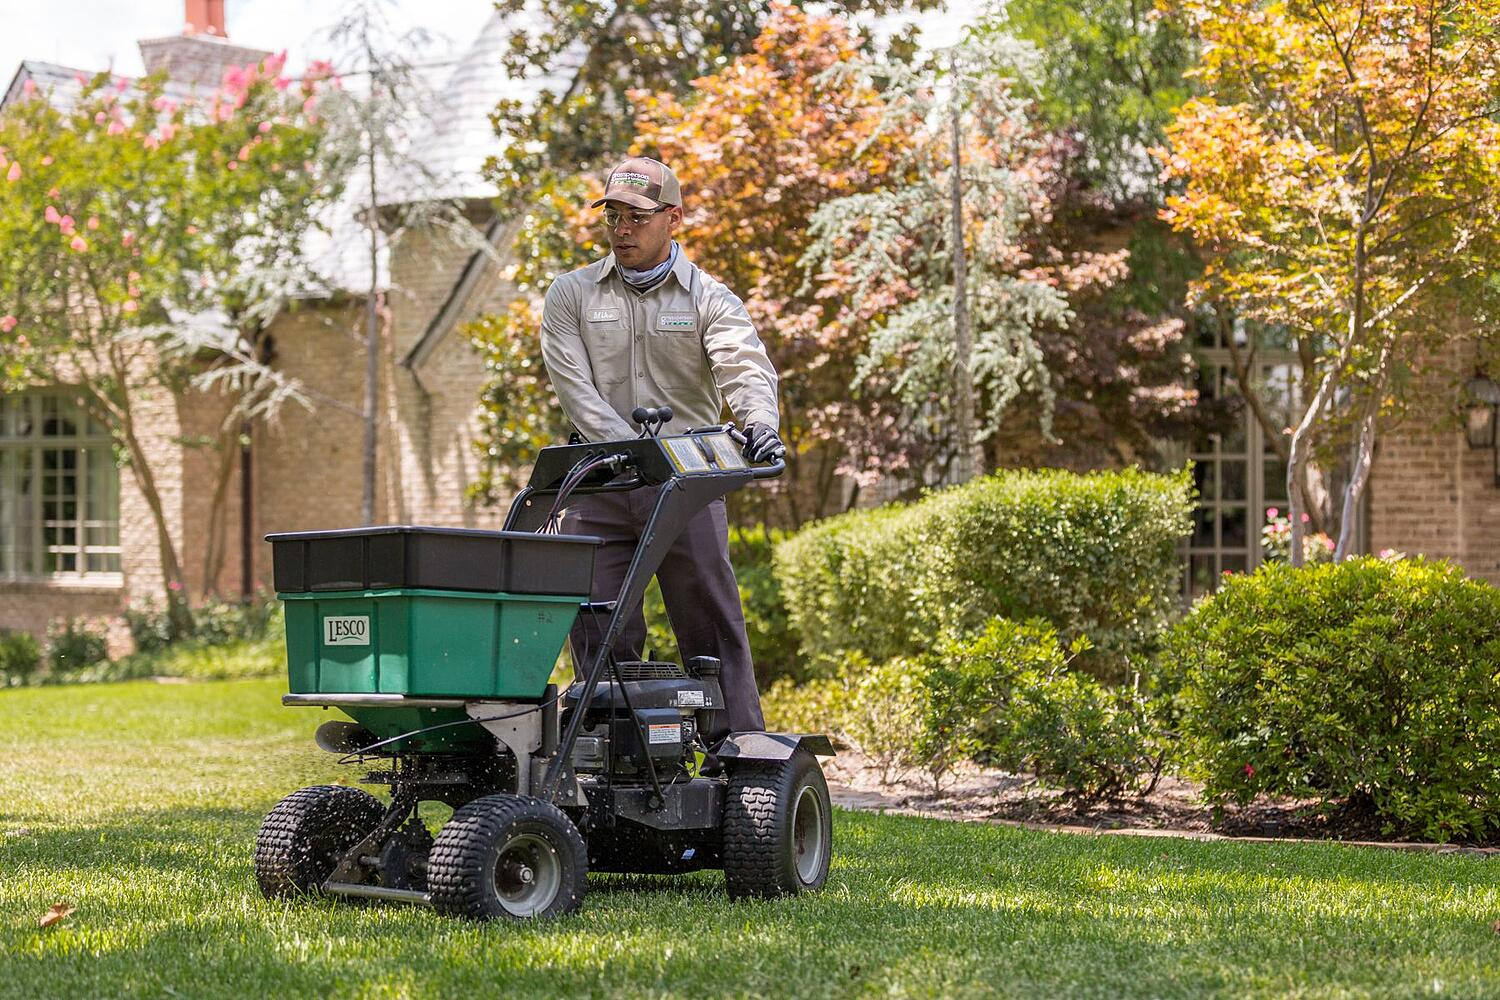 Lawn fertilizer technician at Grassperson